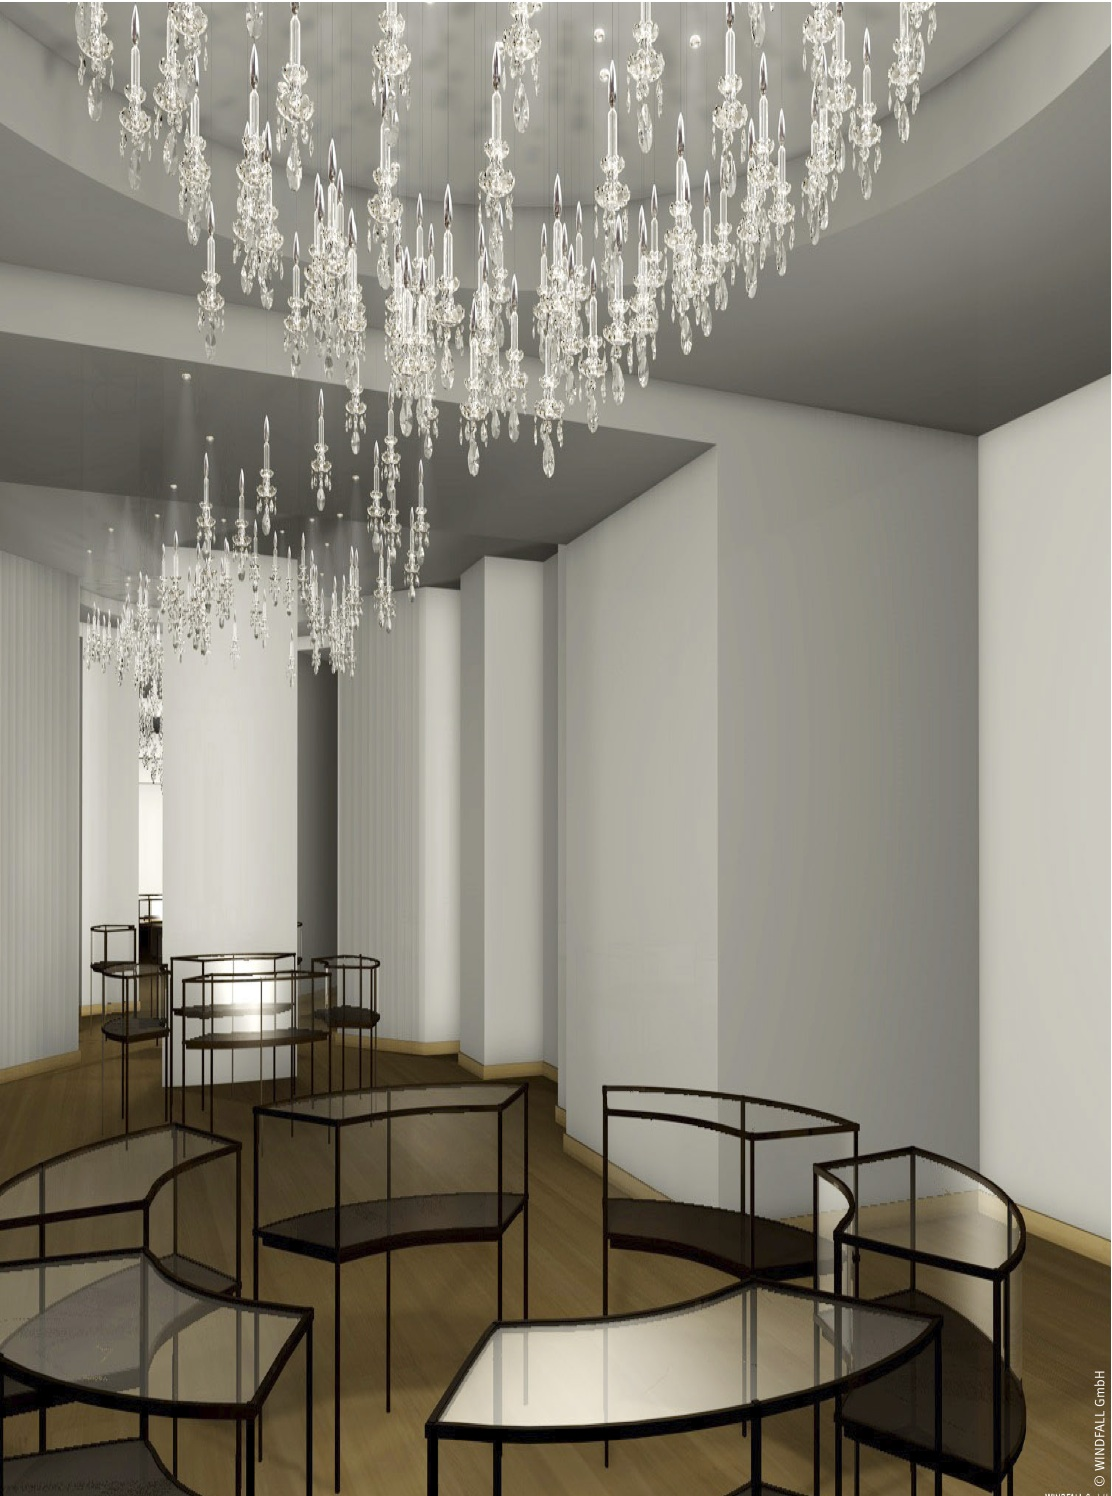 News and events windfall contemporary crystal lighting joins lign windfall contemporary crystal lighting joins lign brasil aloadofball Gallery